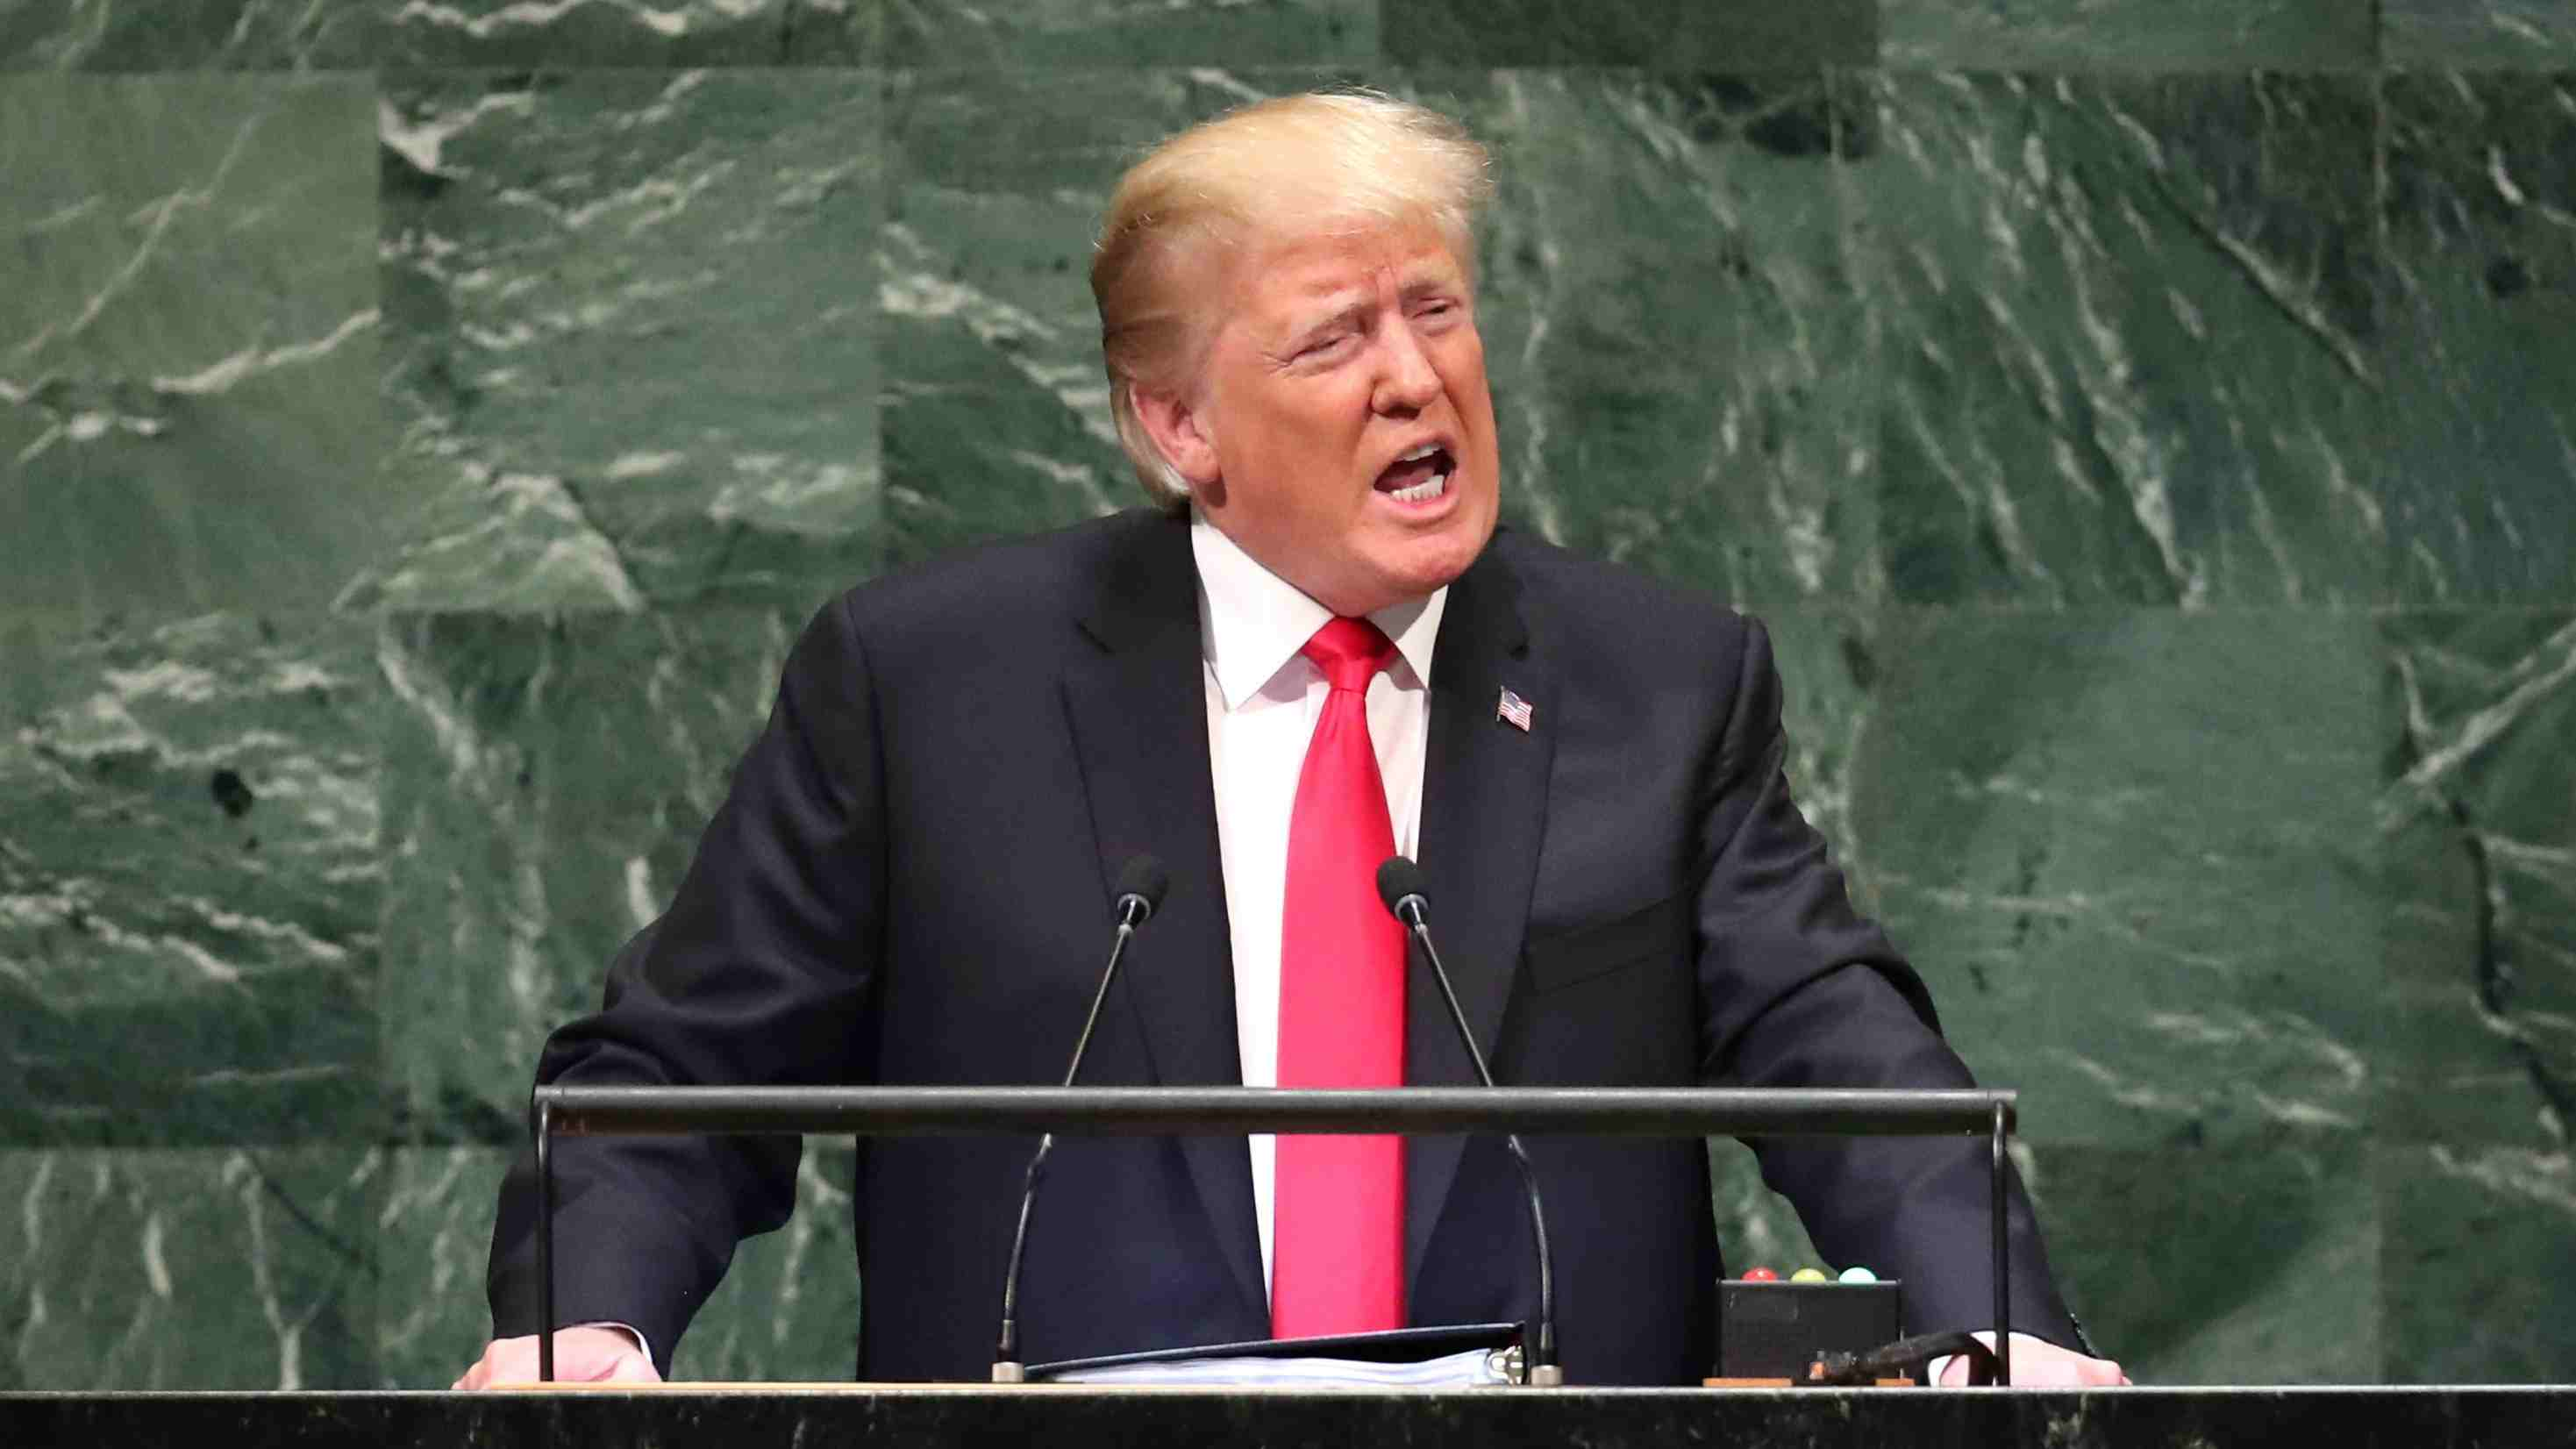 Trump says DPRK sanctions will stay until 'denuclearization occurs'